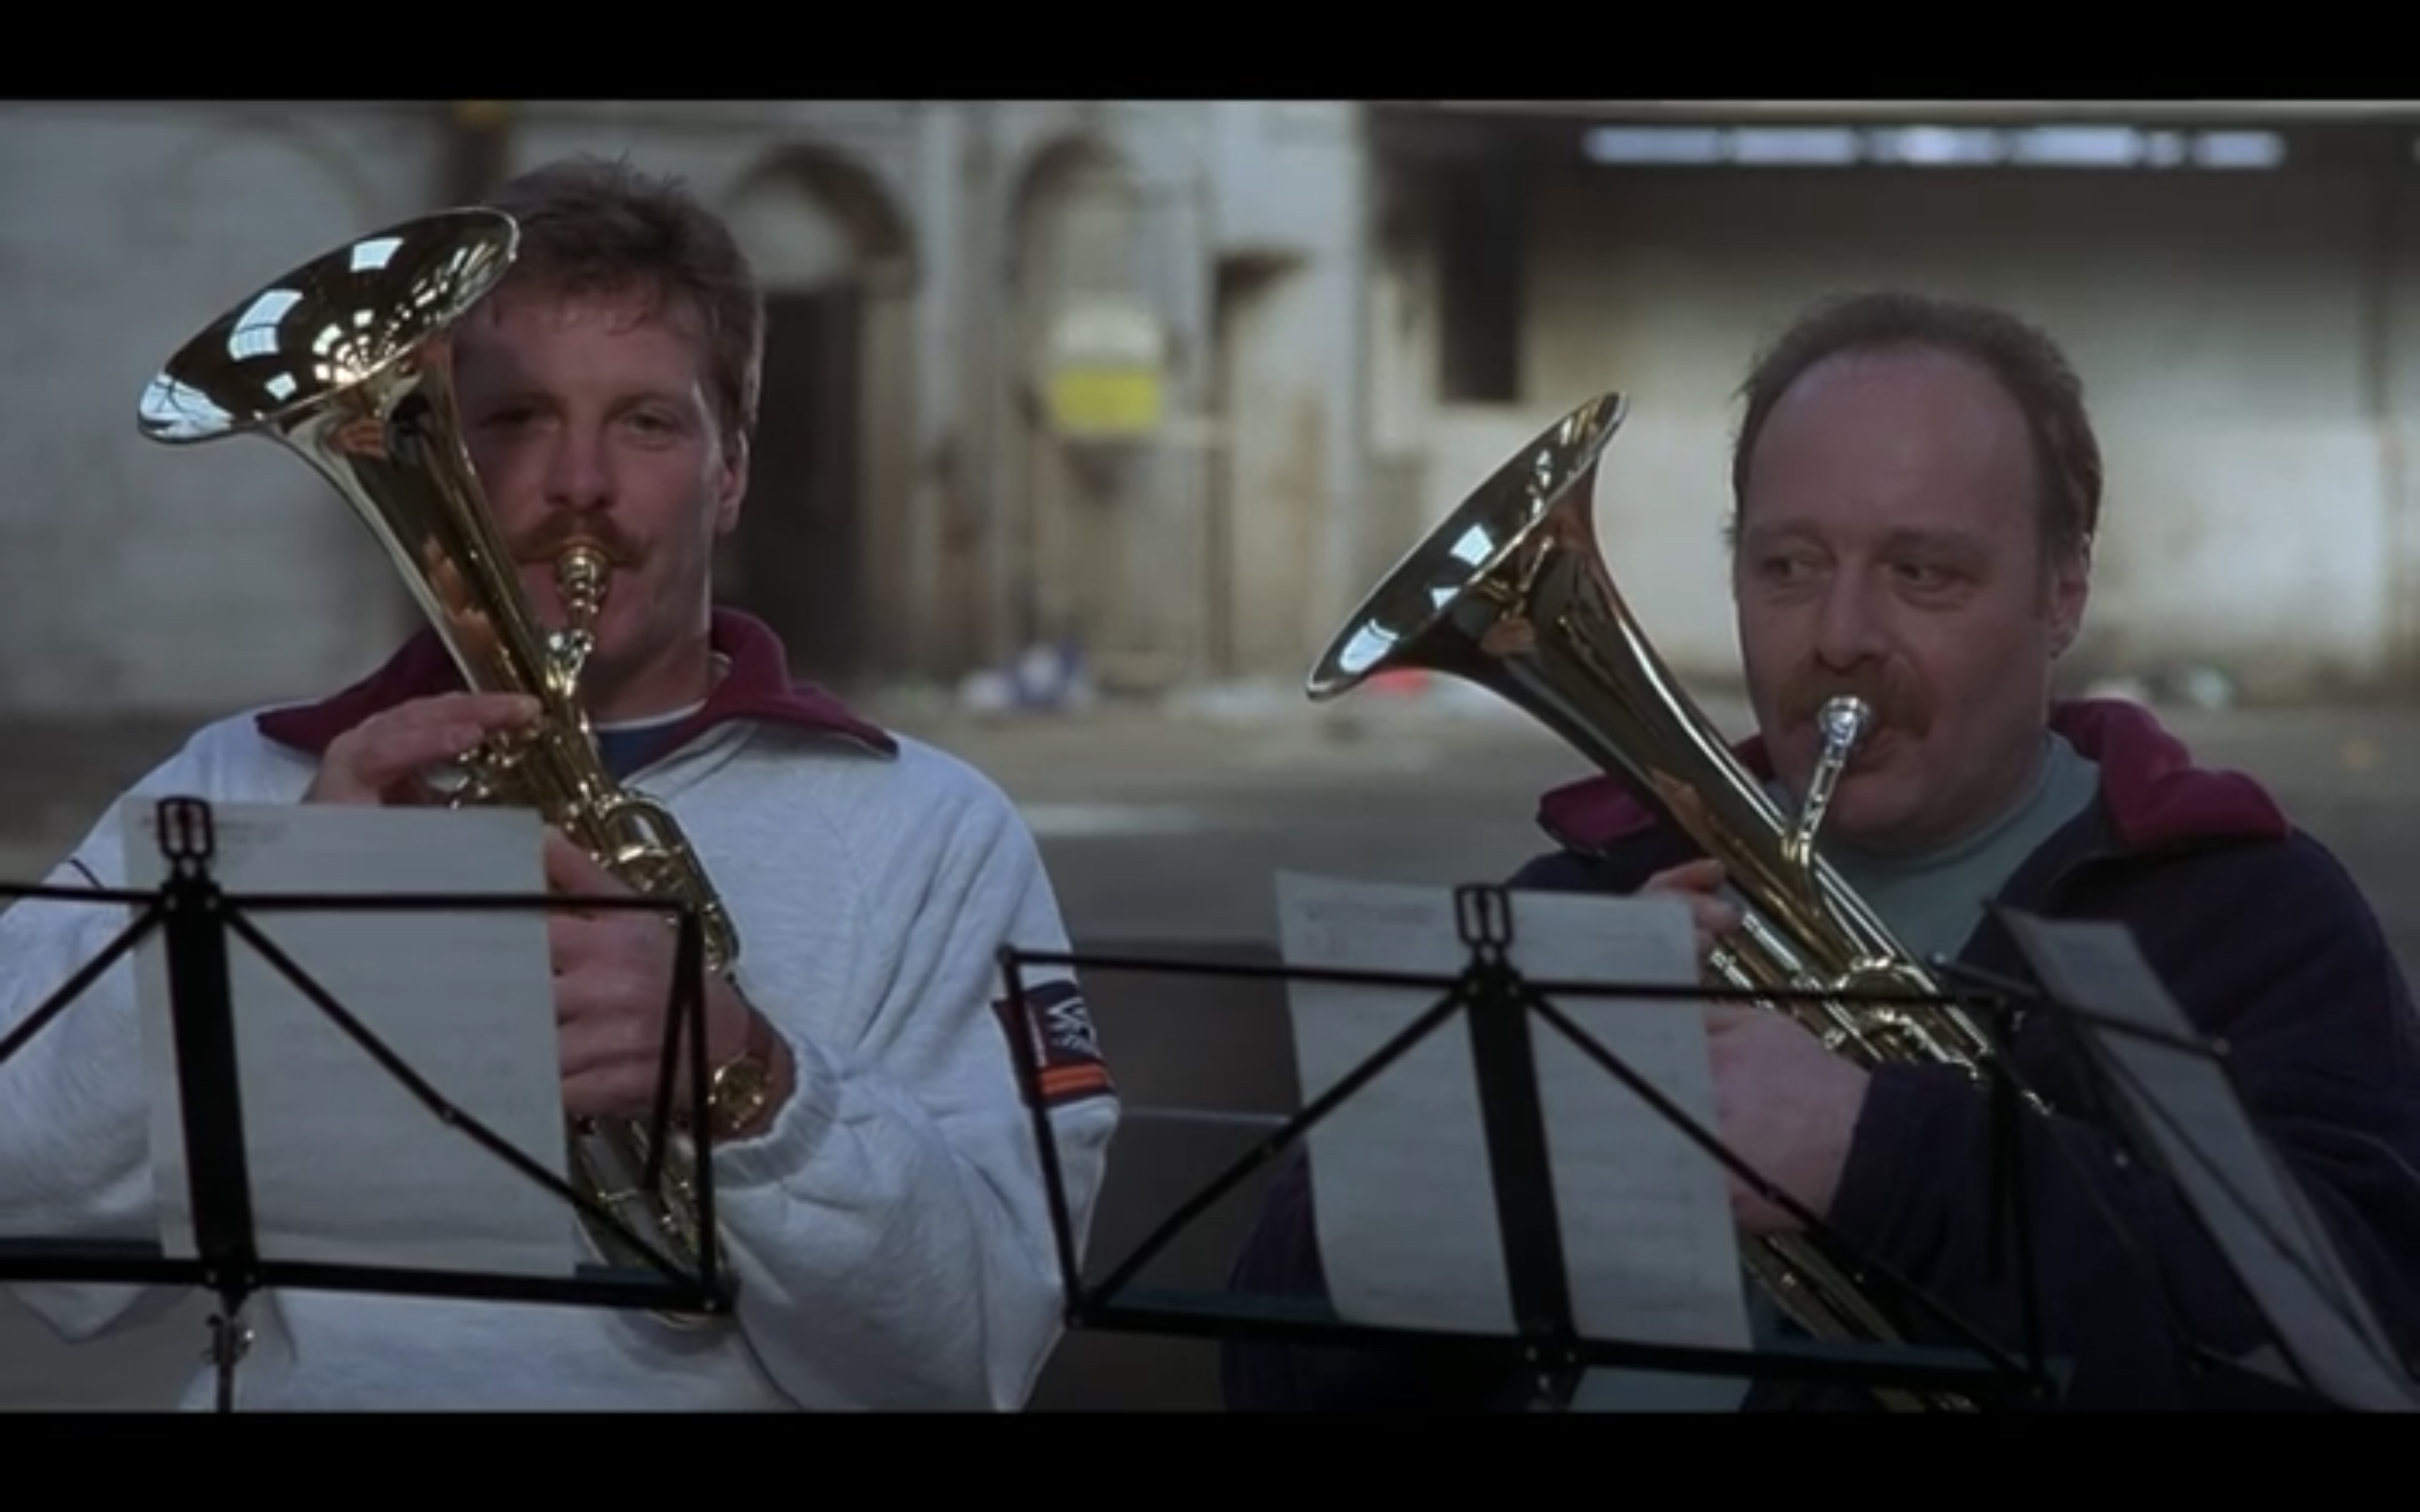 The Brass Band rehearsal with Lomper - Full Monty Filming Location in Sheffield